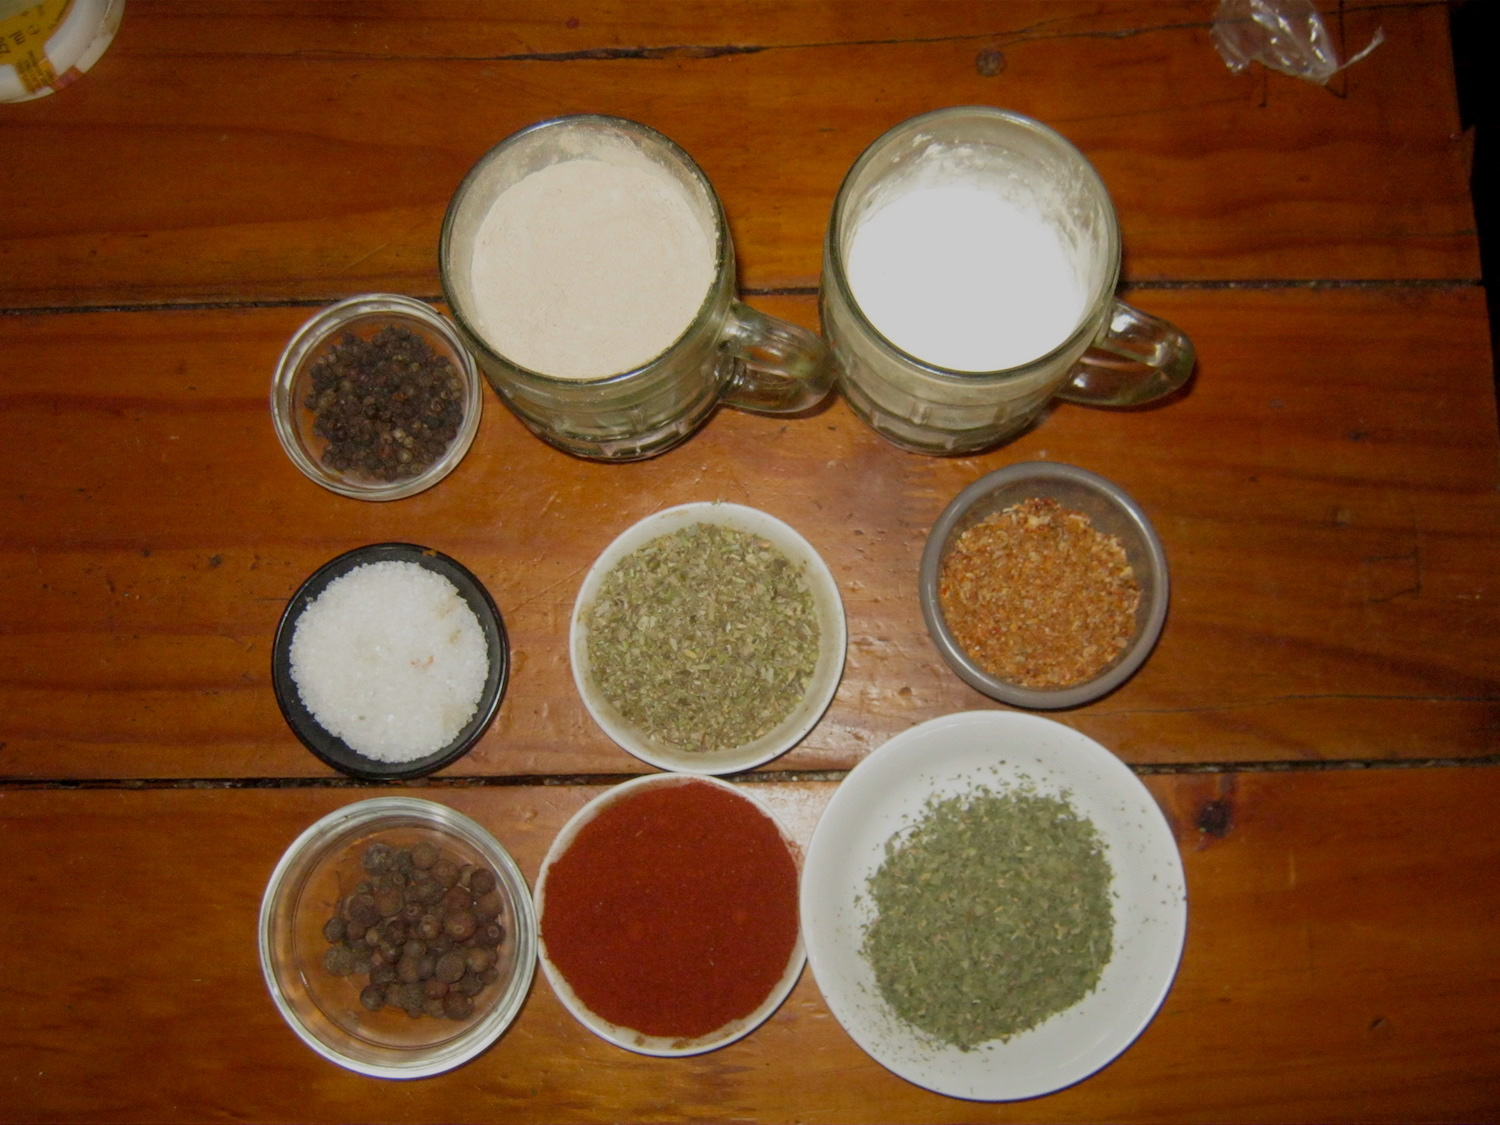 Ingredients for a homemade steak rub